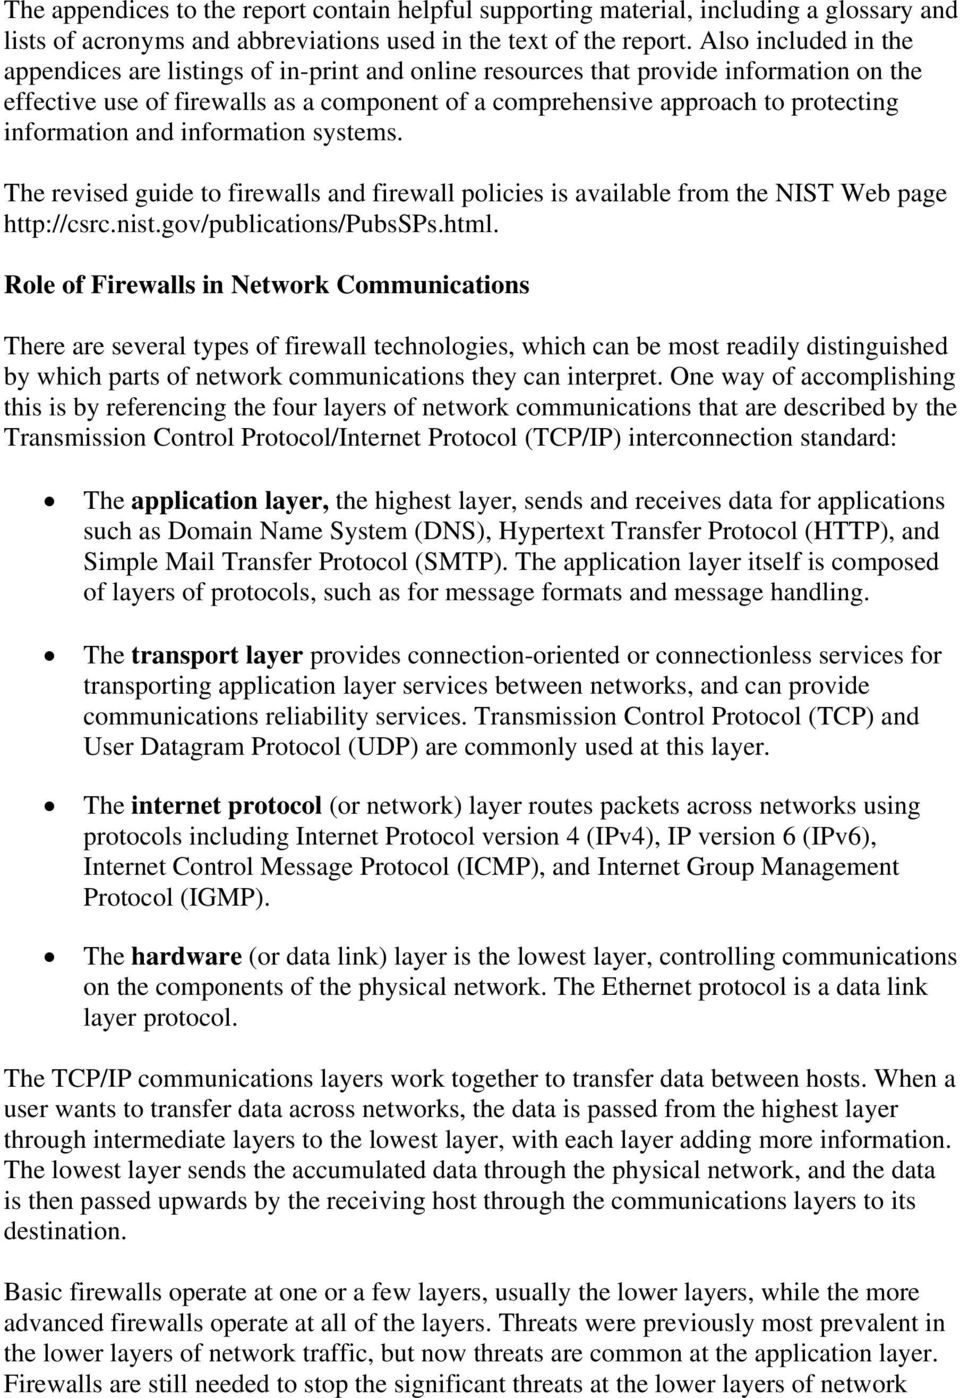 information and information systems. The revised guide to firewalls and firewall policies is available from the NIST Web page http://csrc.nist.gov/publications/pubssps.html.